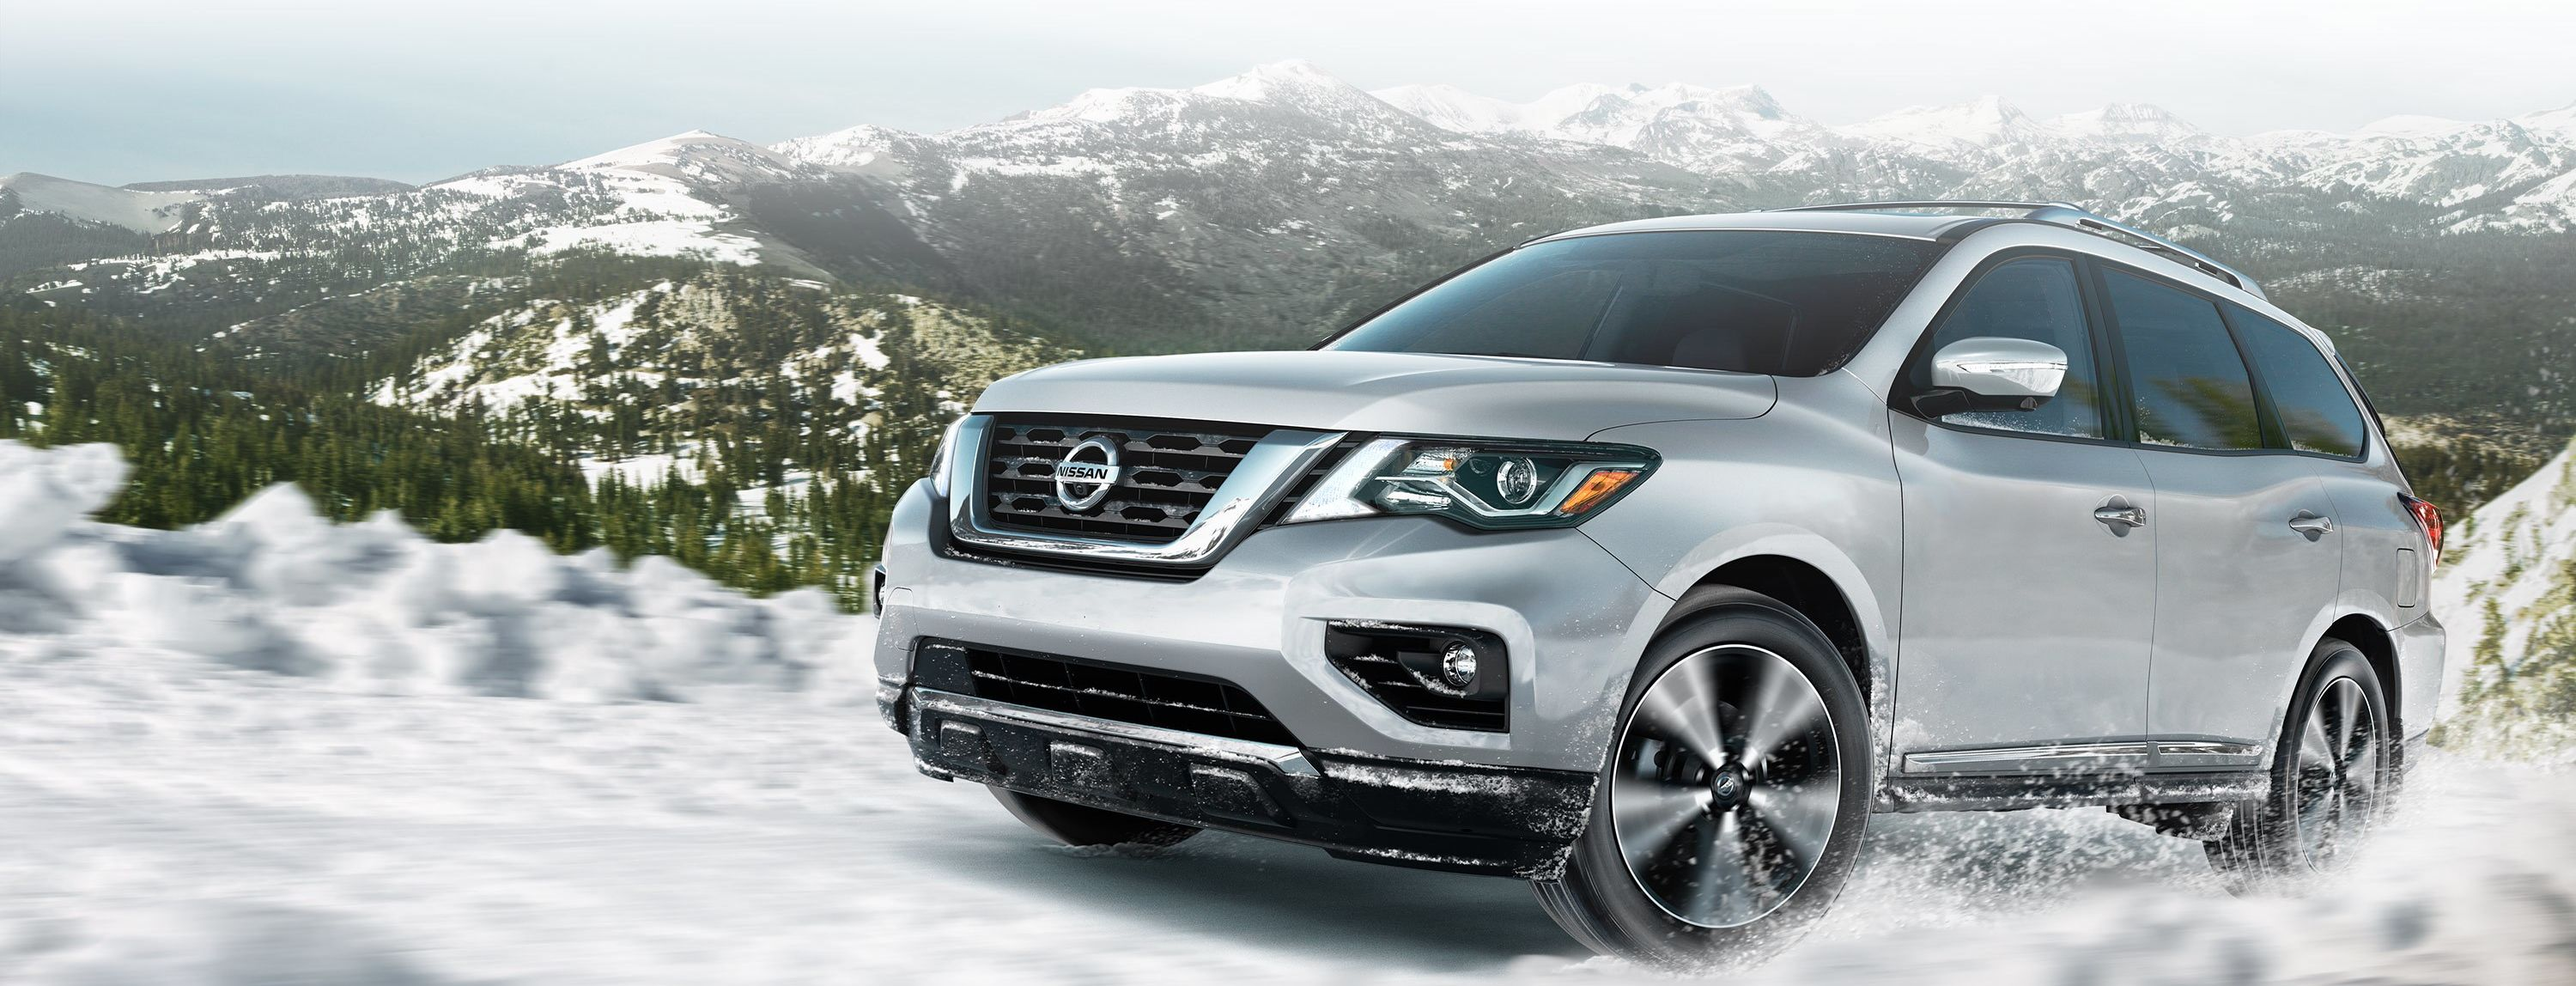 2019 Nissan Pathfinder for Sale near Hicksville, NY